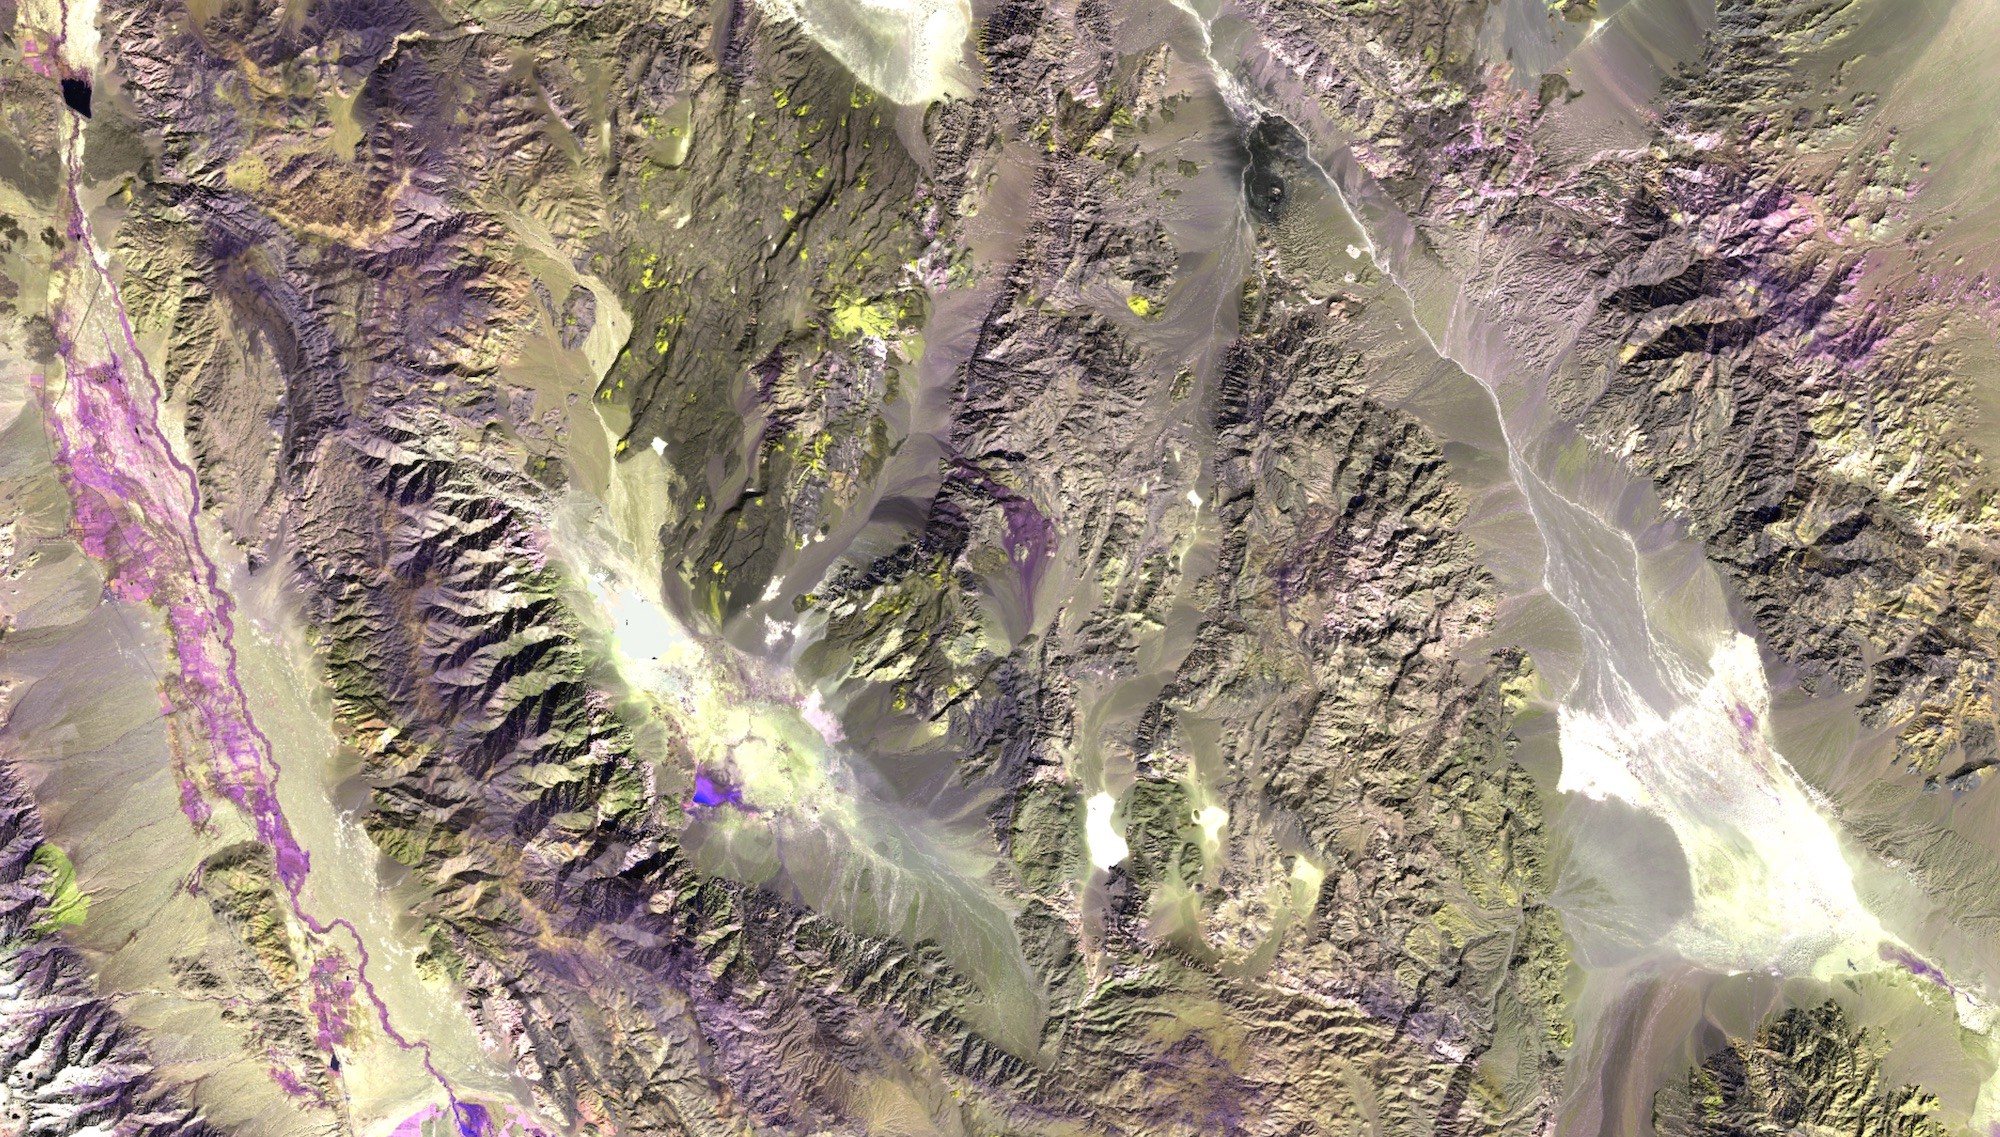 Sentinel-2 false color image of an area near Death Valley National Park,CA